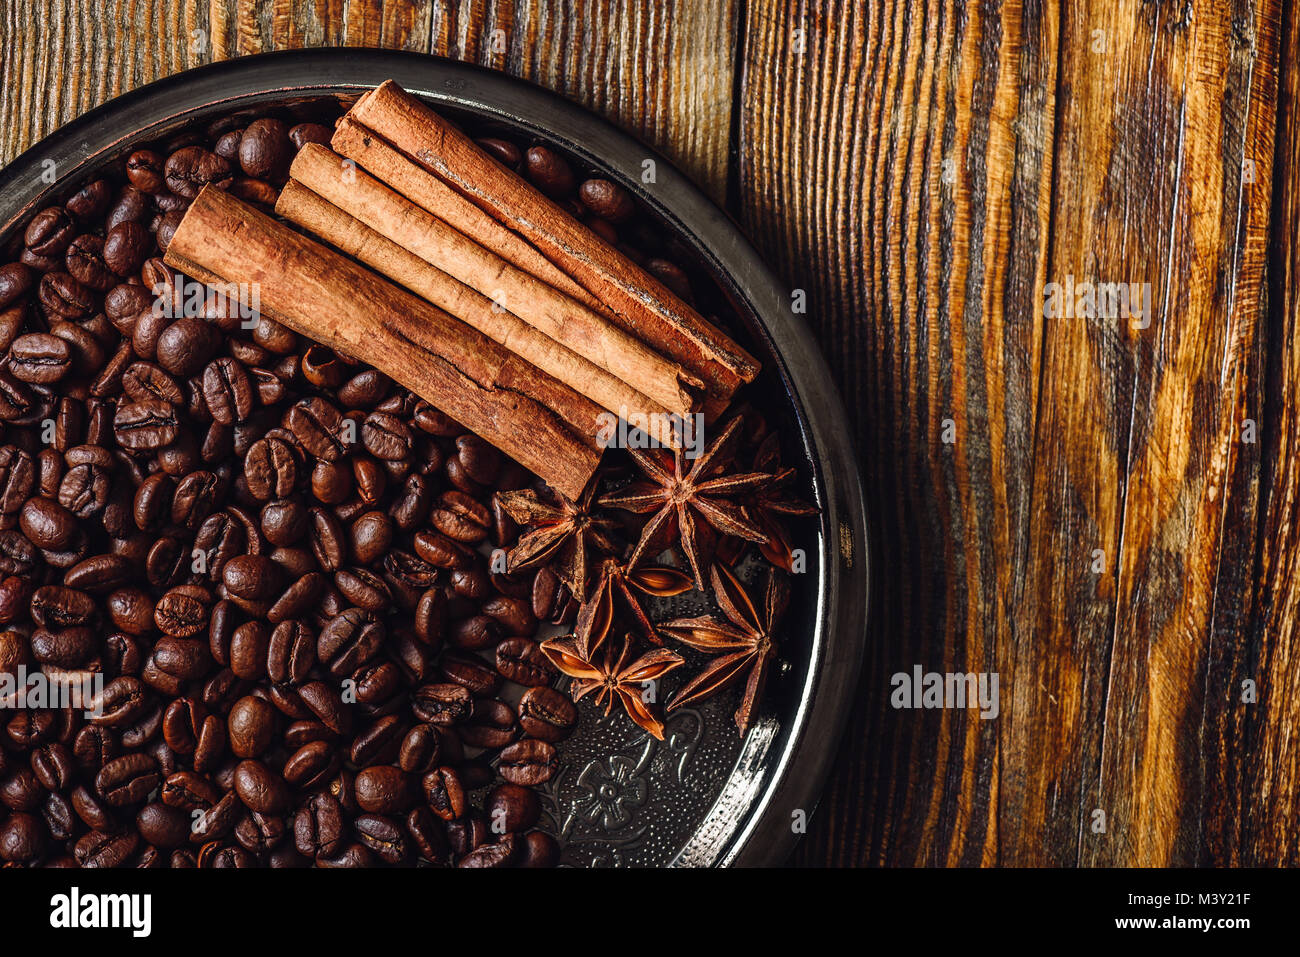 Coffee Beans with Cinnamon Sticks and Chinese Star Anise on Metal Plate. View from Above. Copy Space on the Right - Stock Image